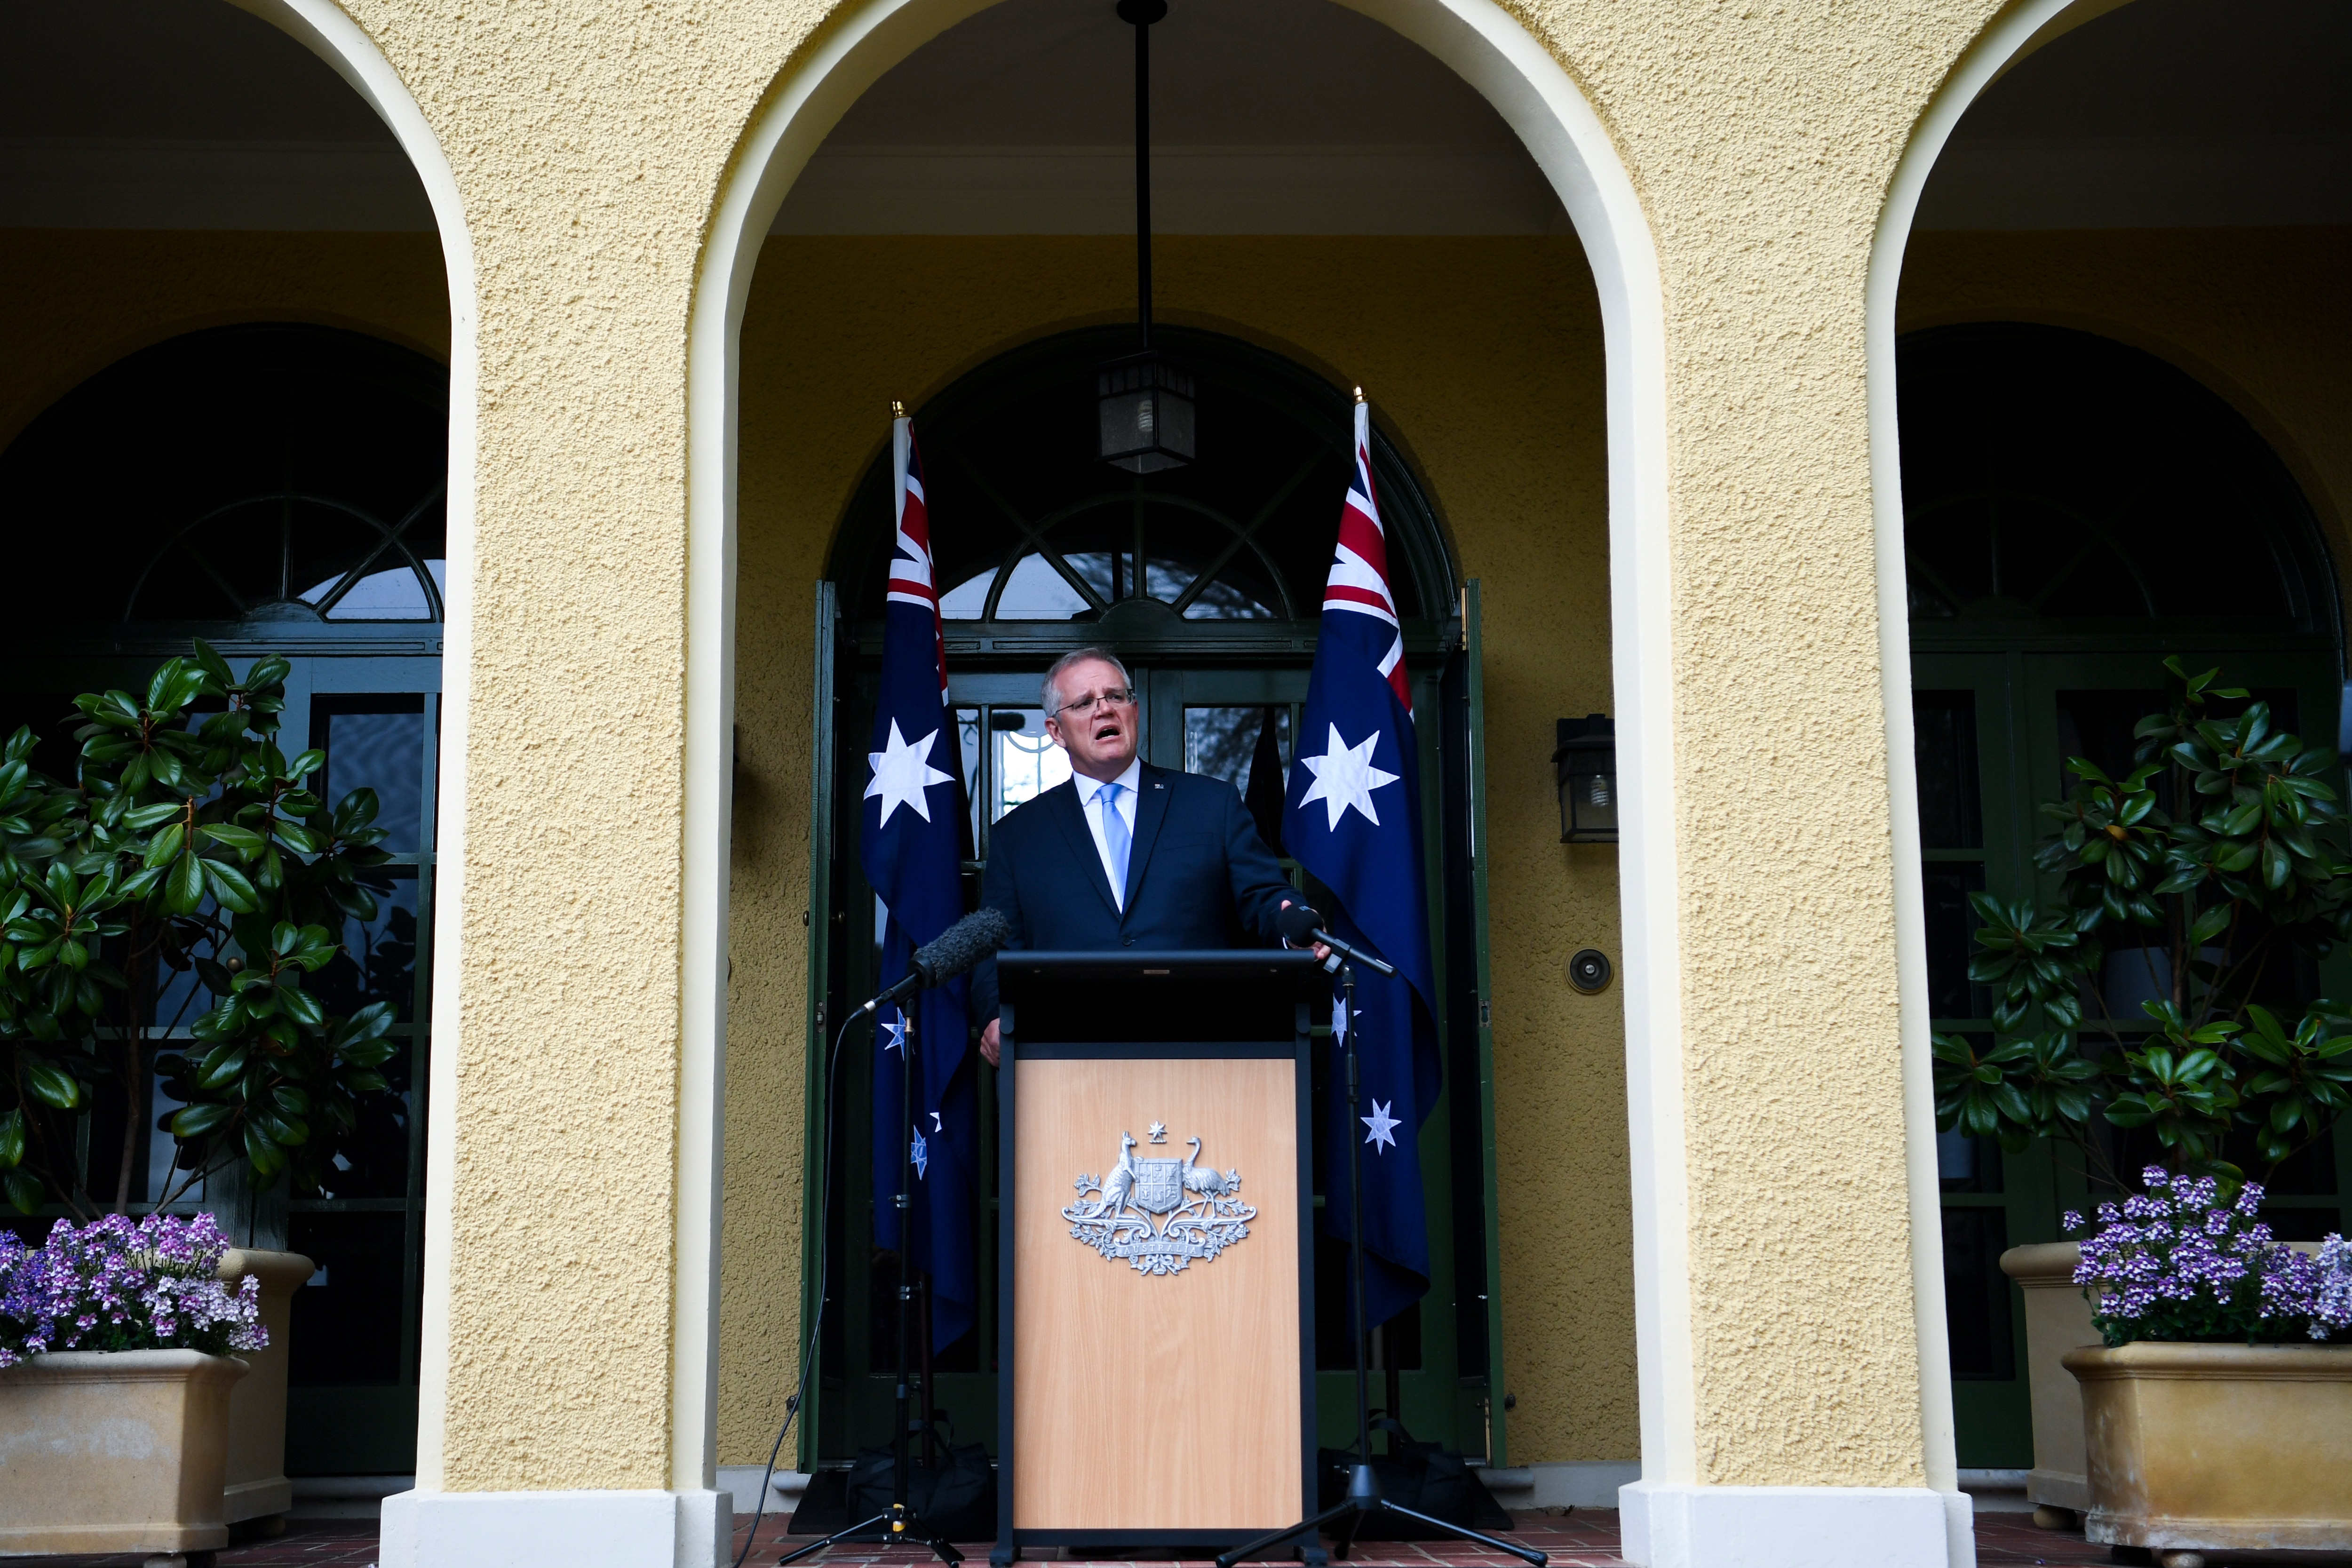 Deaf advocates have highlighted the lack of Auslan interpreters used at Prime Minister Scott Morrison's press conferences.